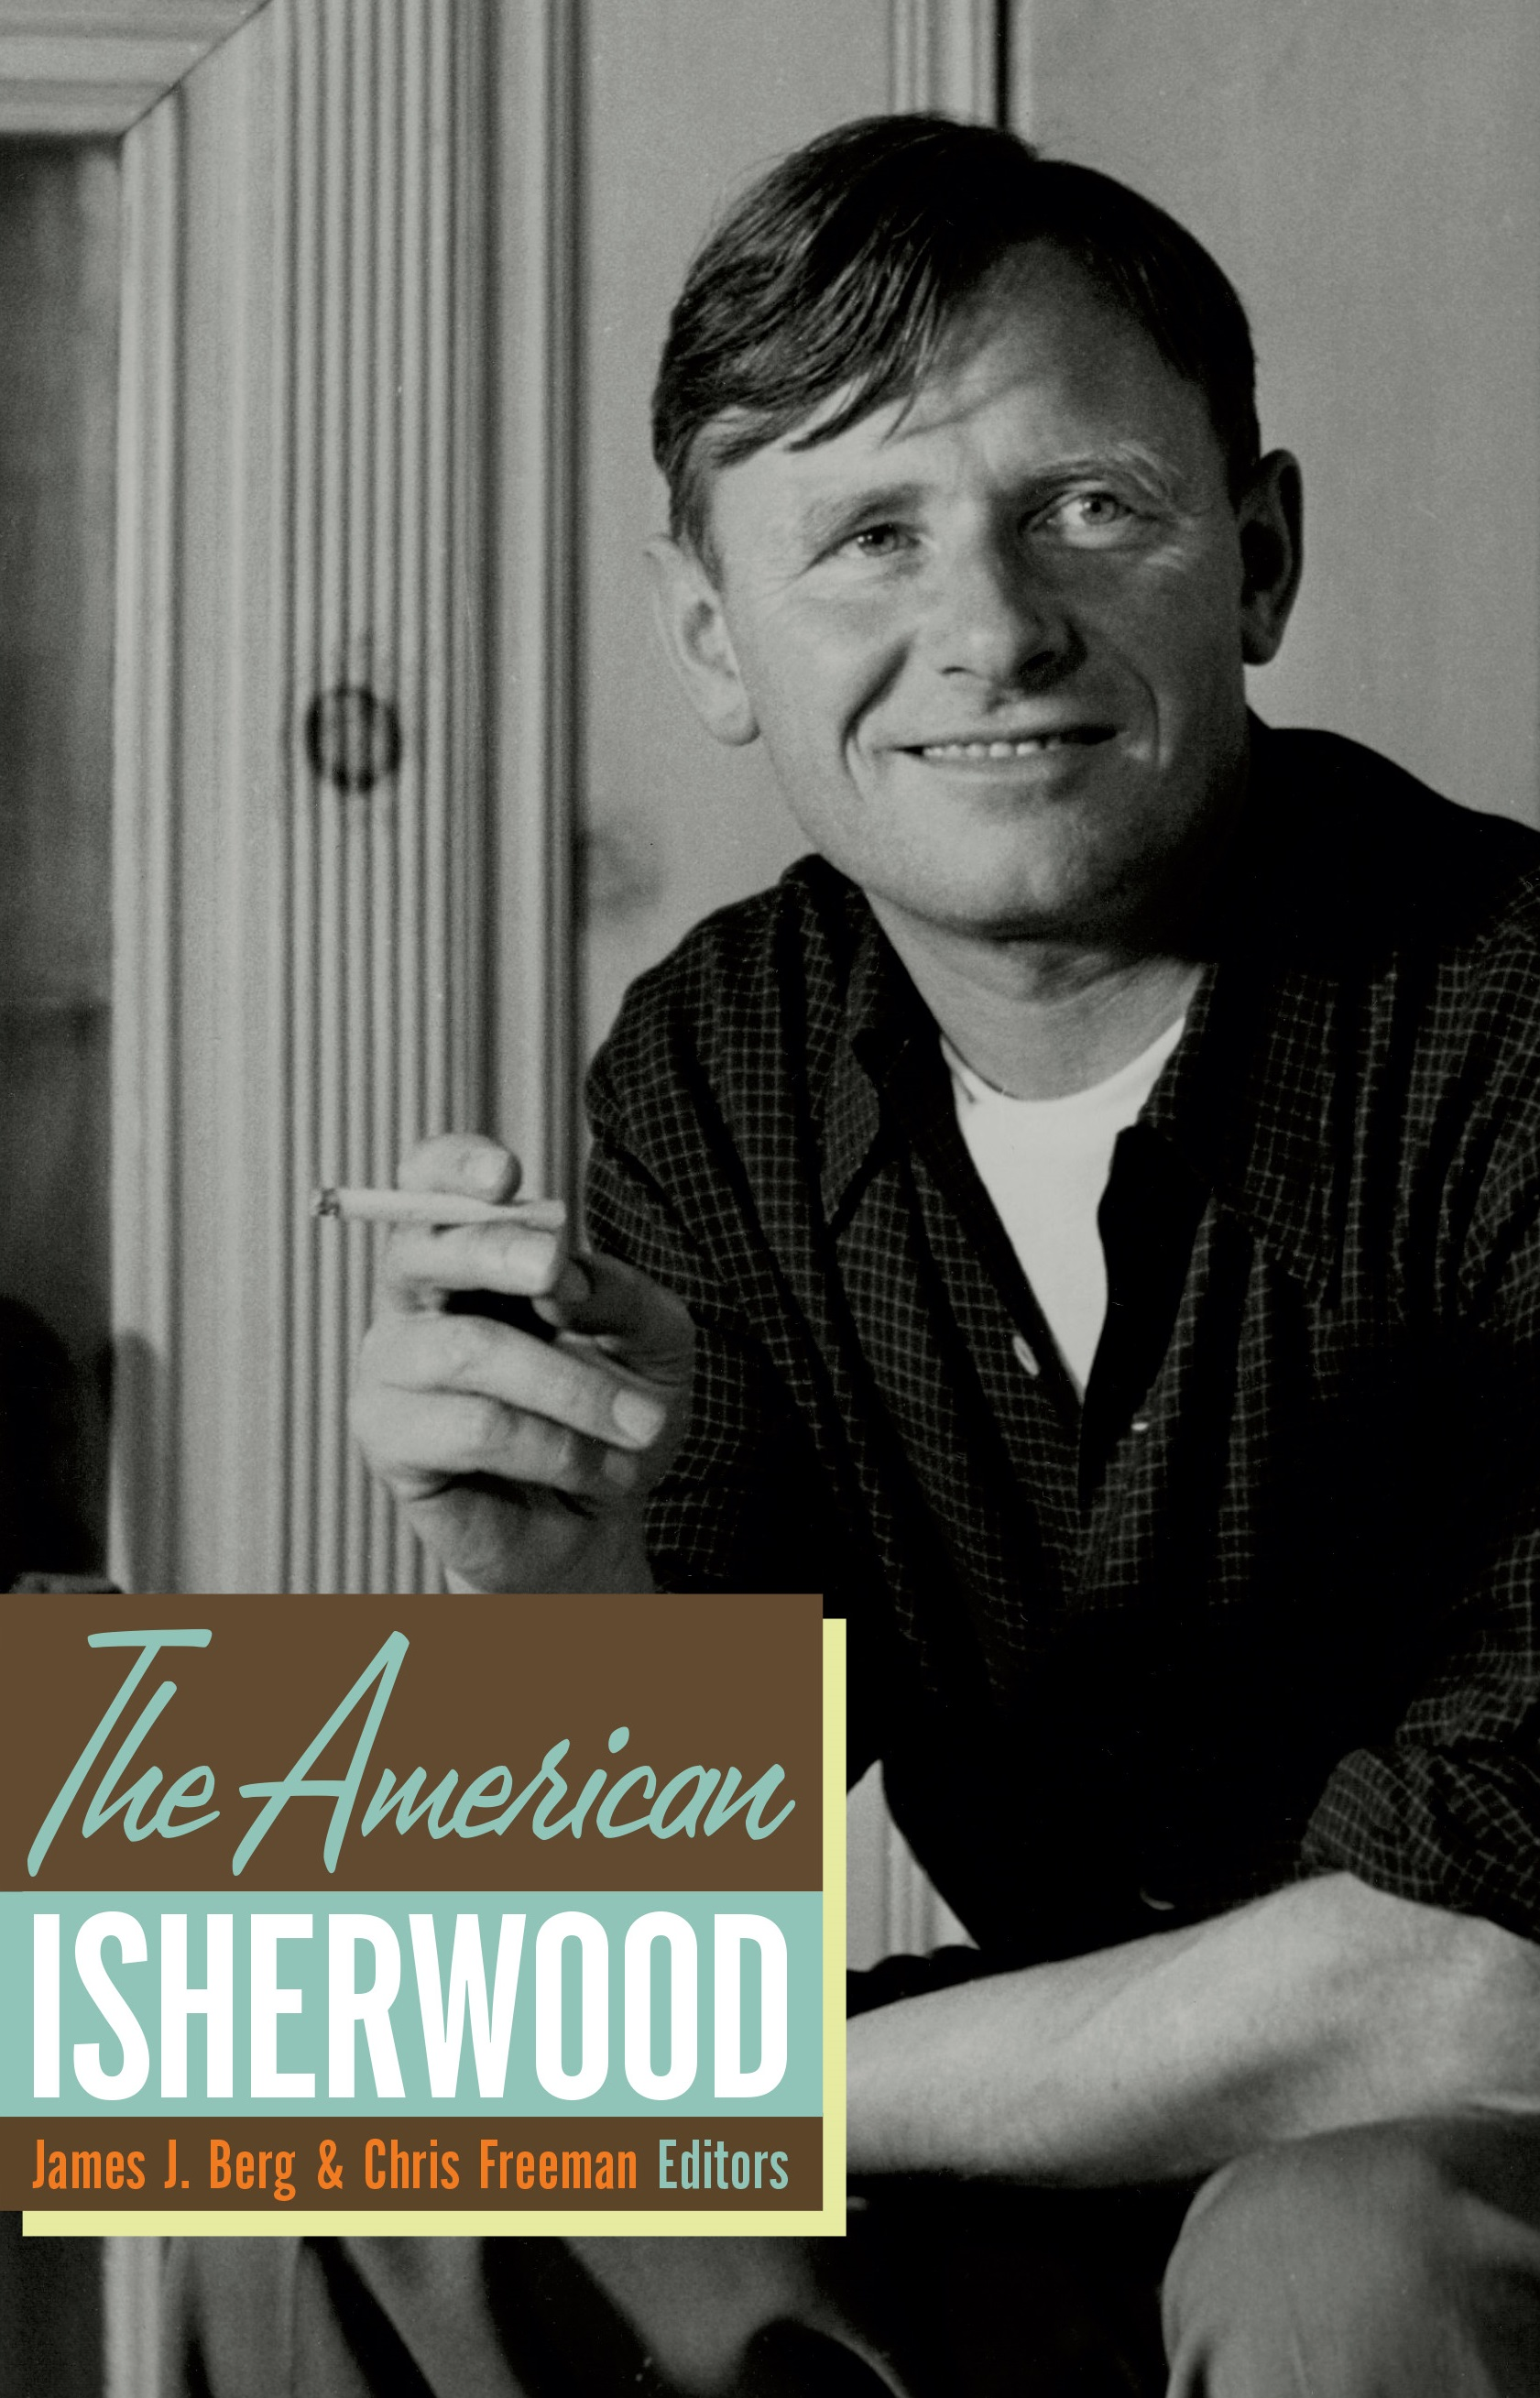 The American Isherwood edited by James J. Berg and Chris Freeman